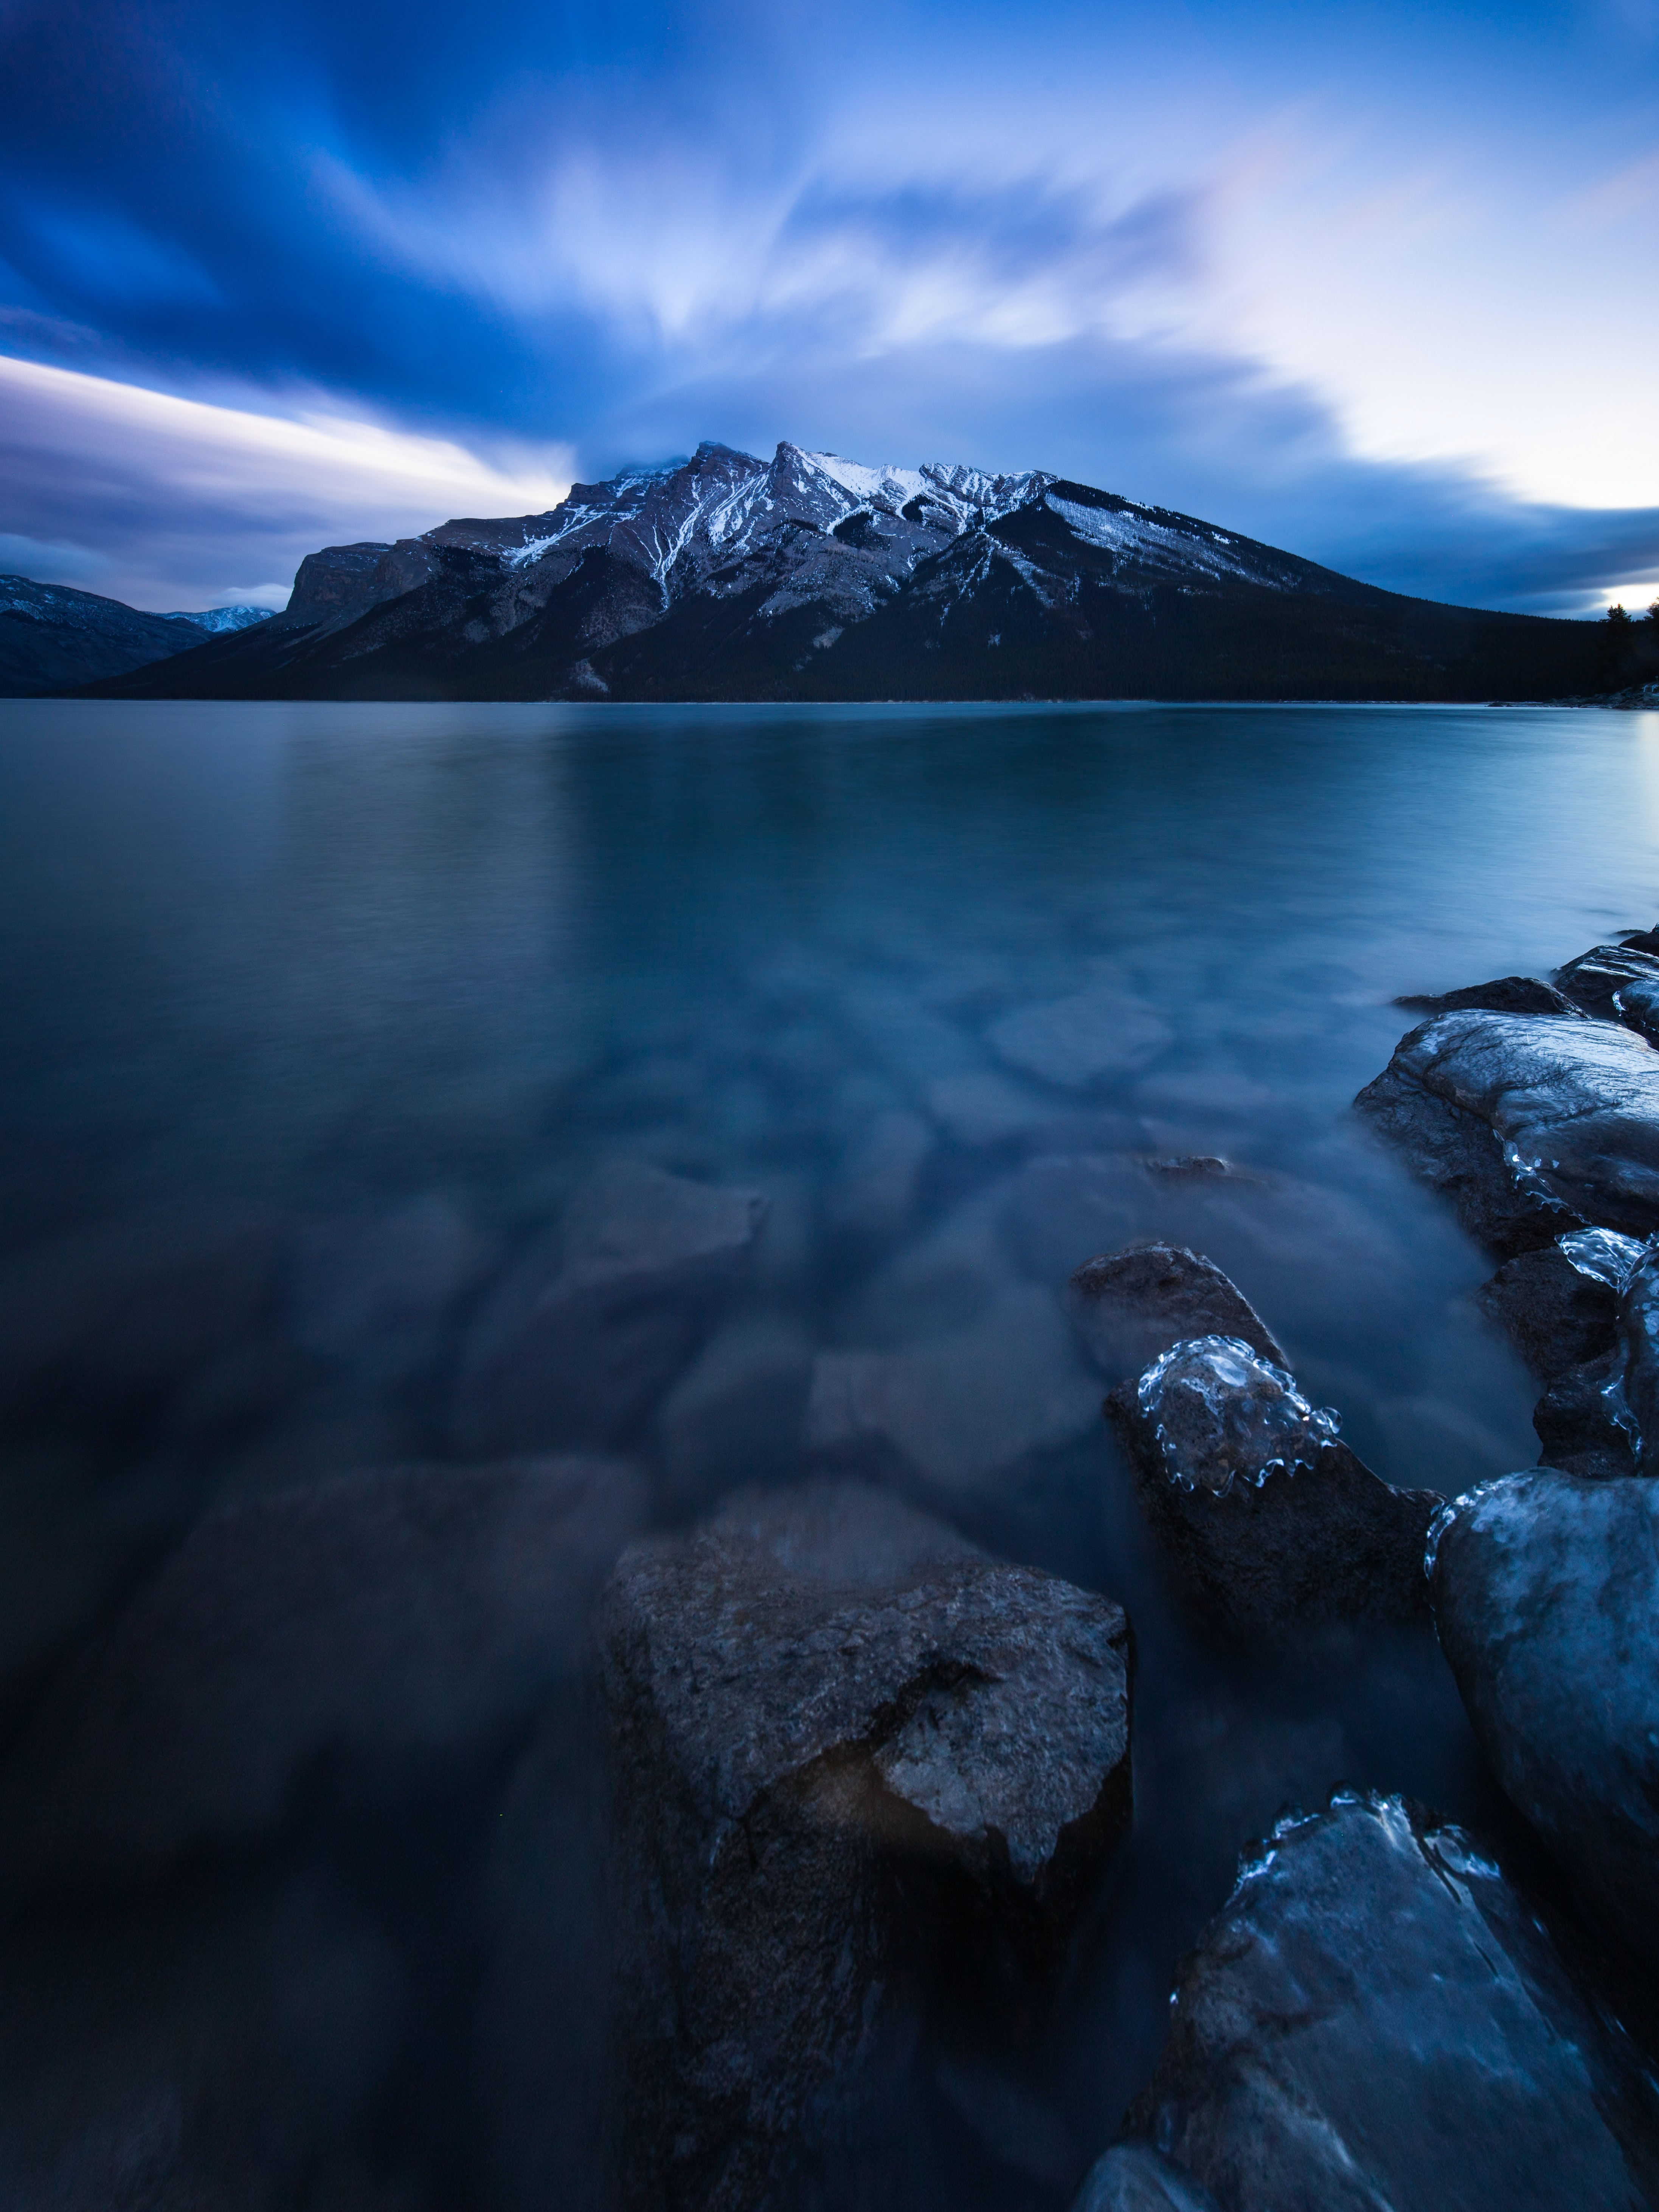 landscape photography of body of water and mountain